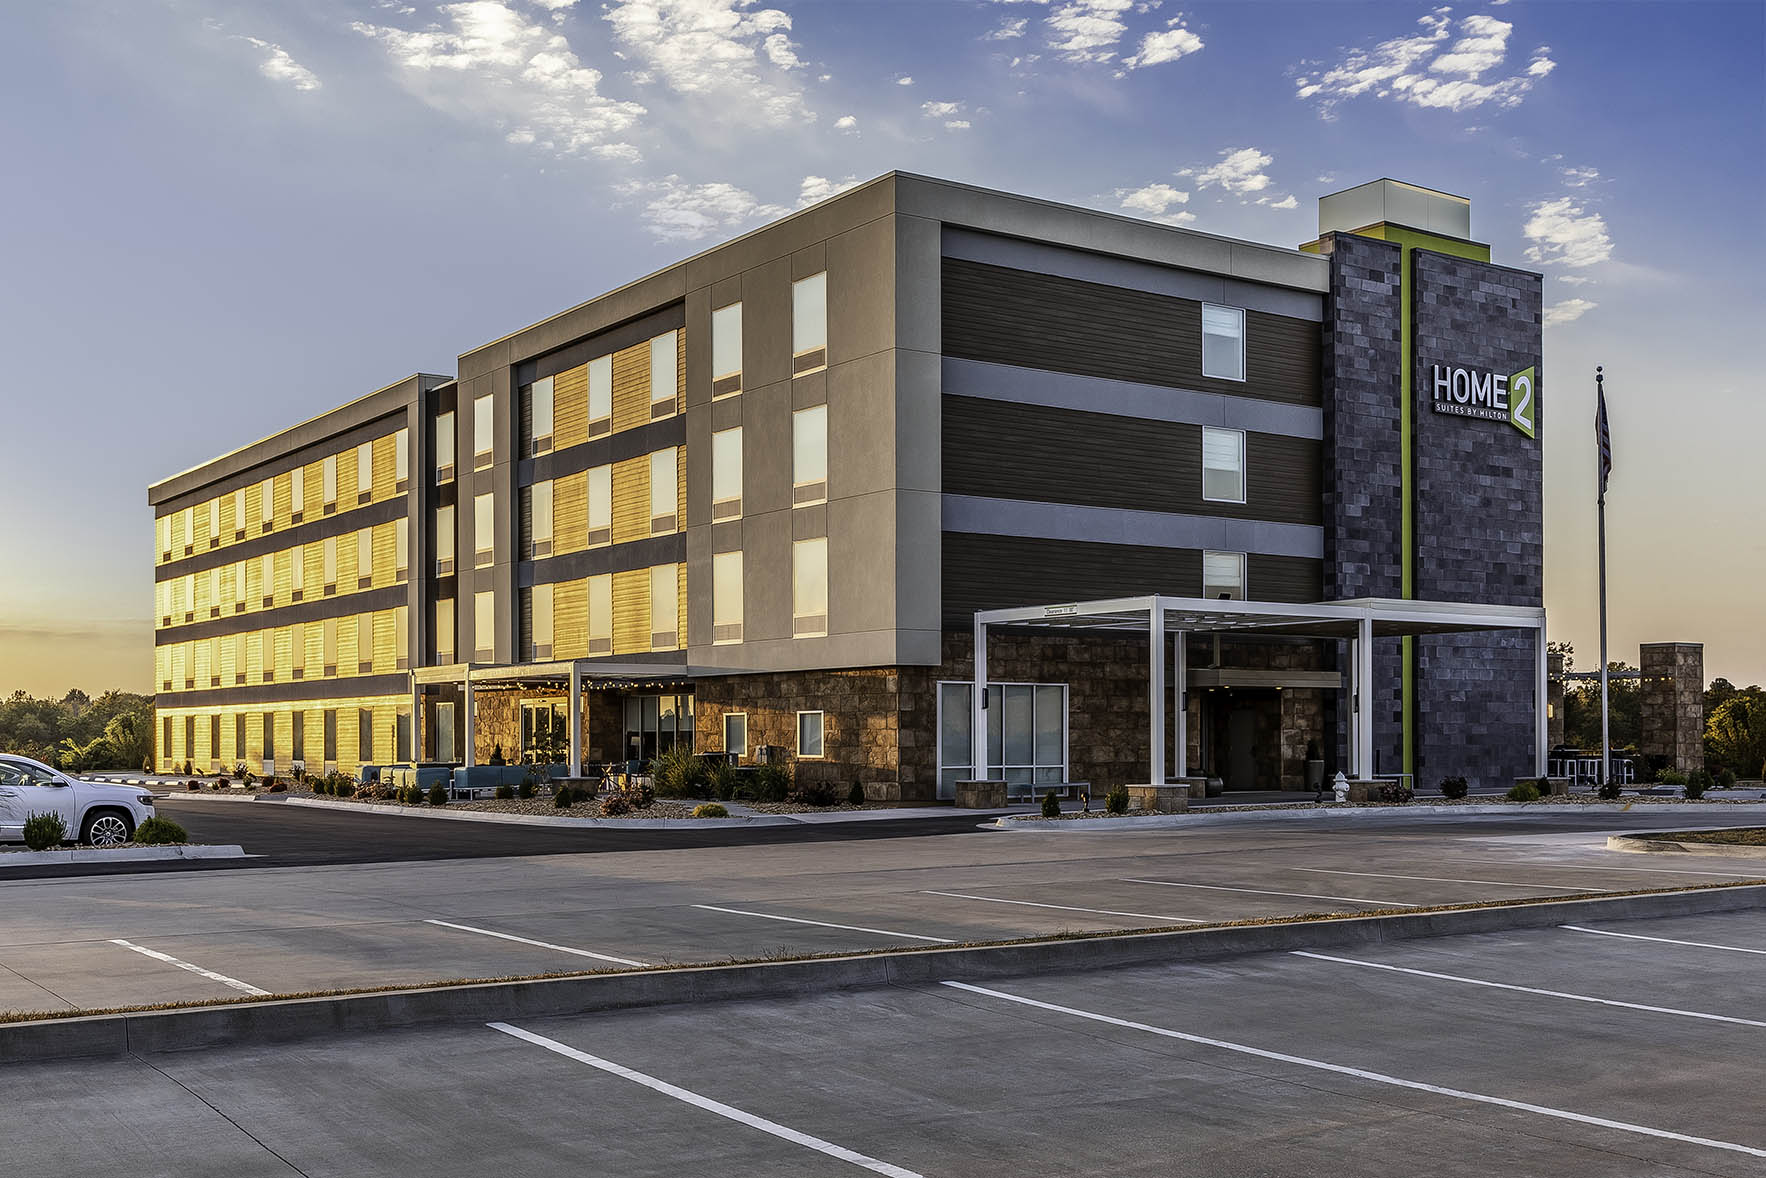 Home 2 Suites by Hilton Anderson Engineering Commercial Photography